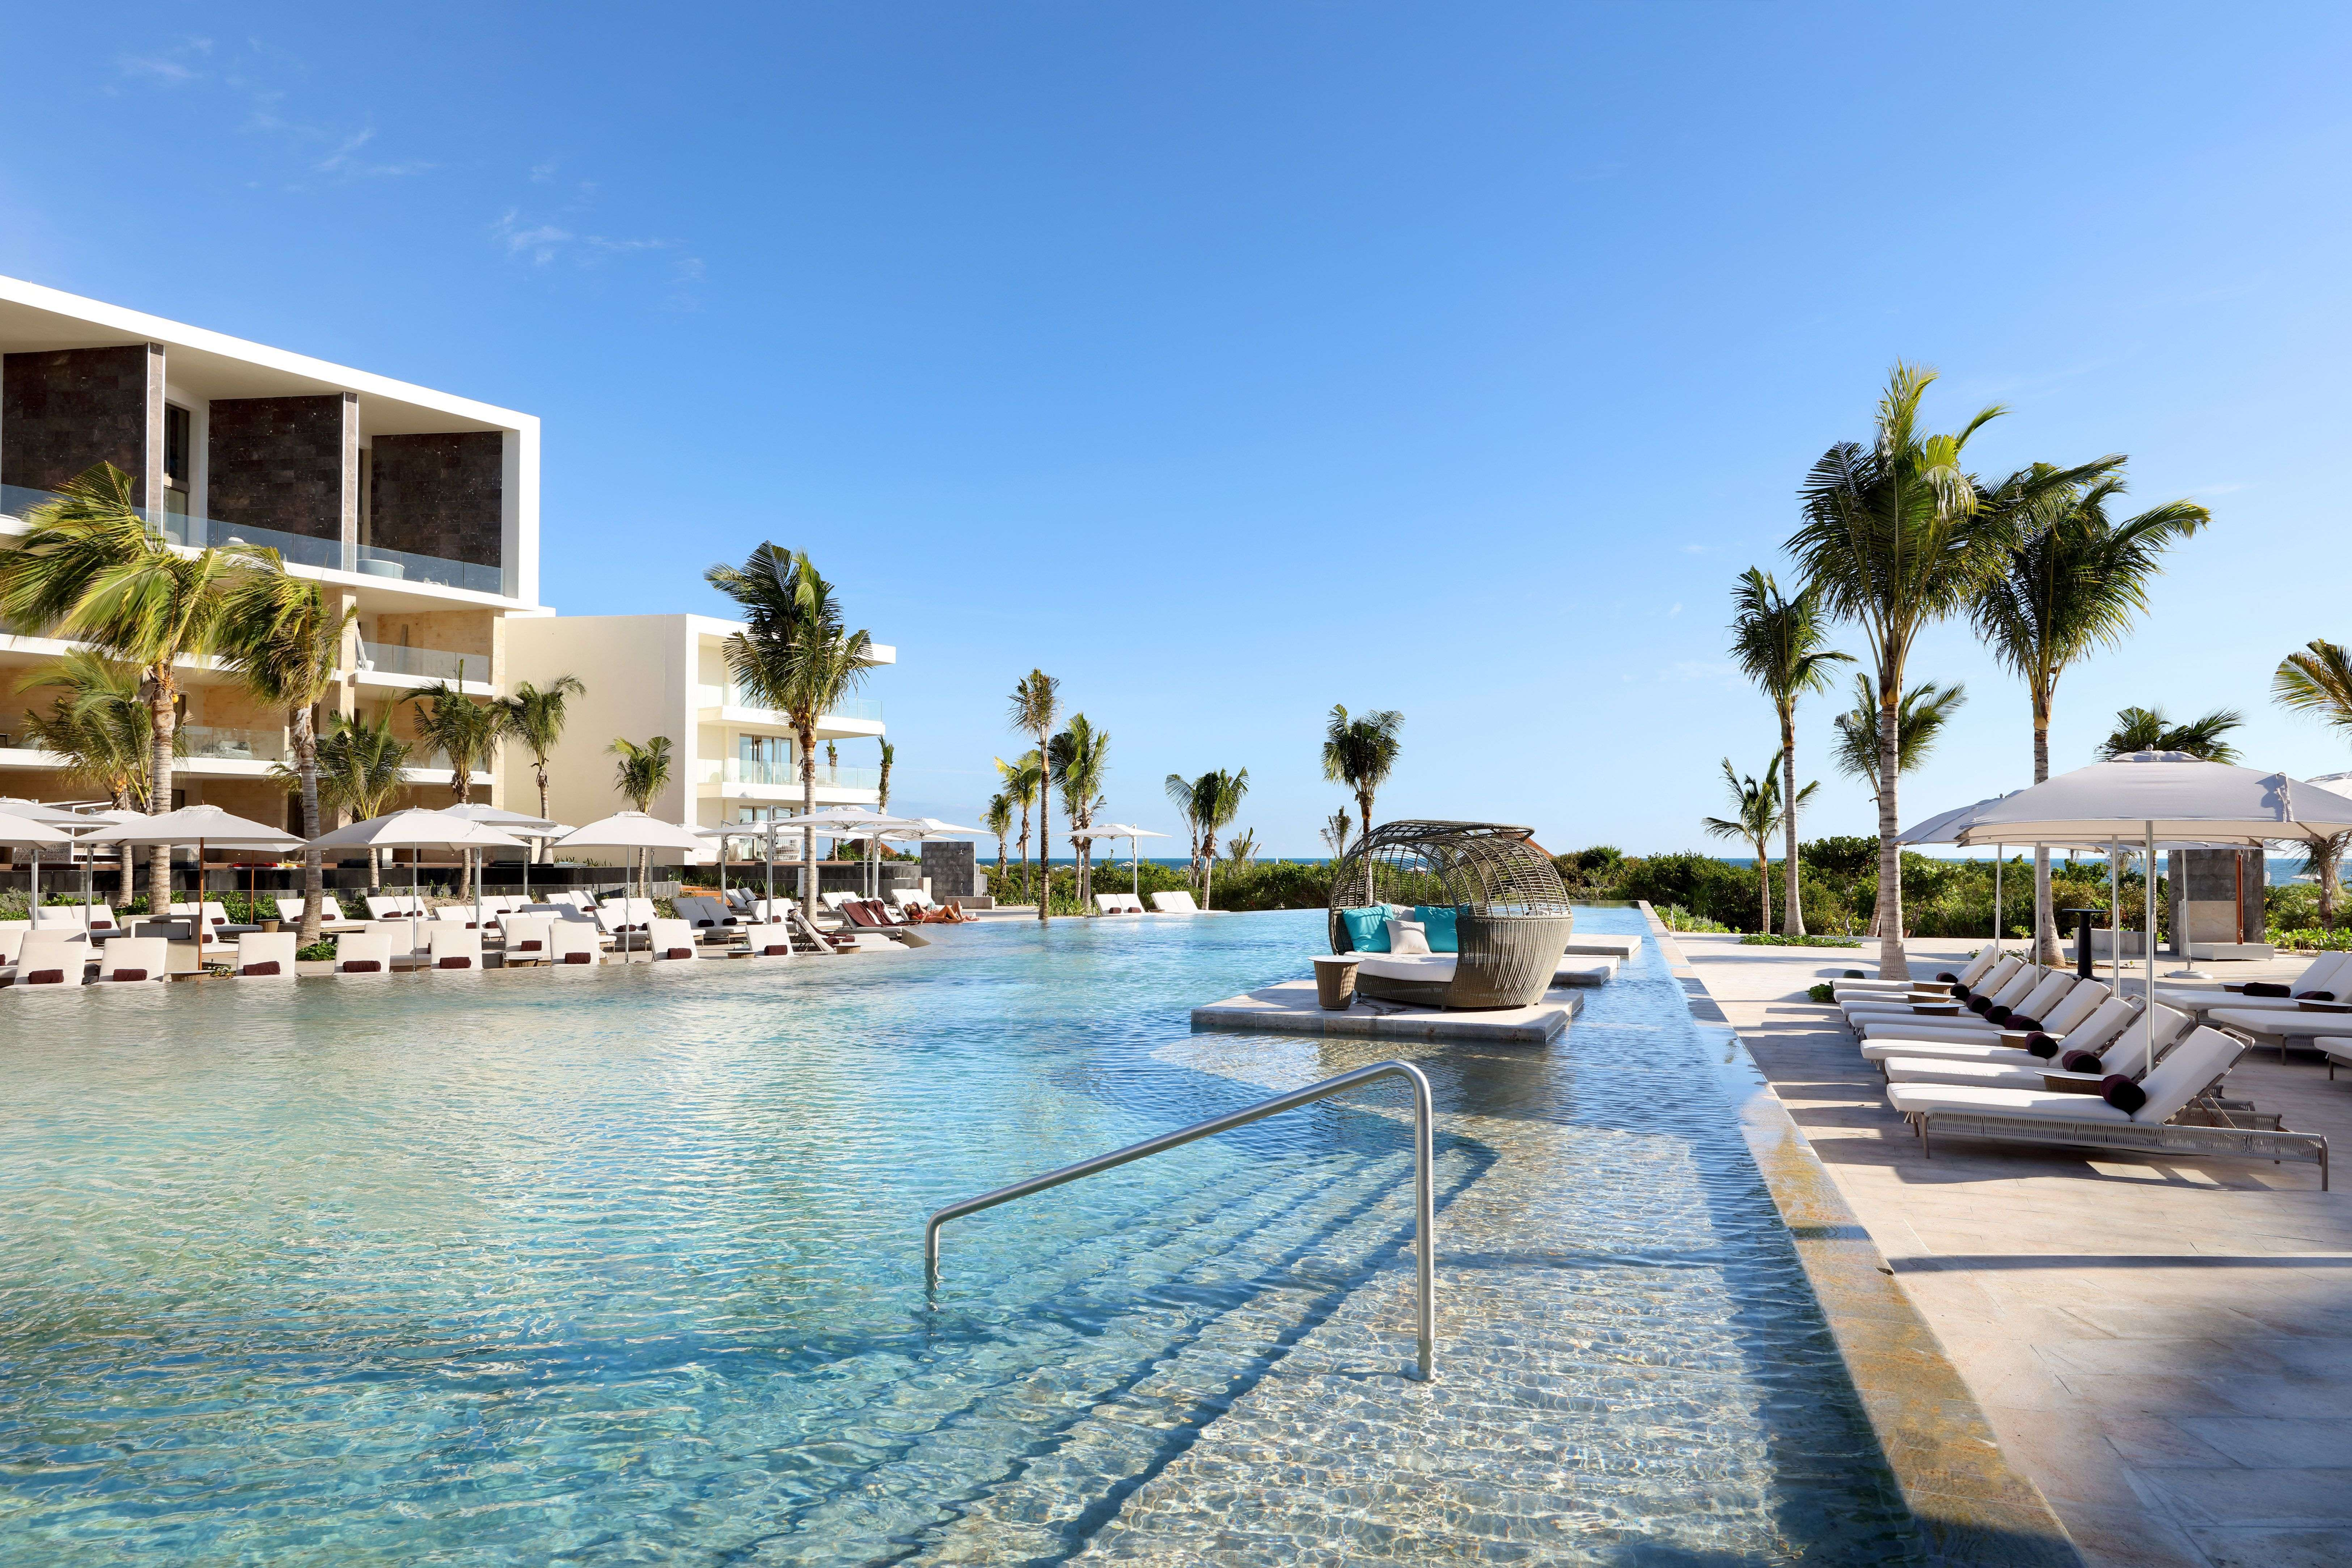 TRS Coral Hotel - The Royal Suites by Palladium, Costa Mujeres, Mexico